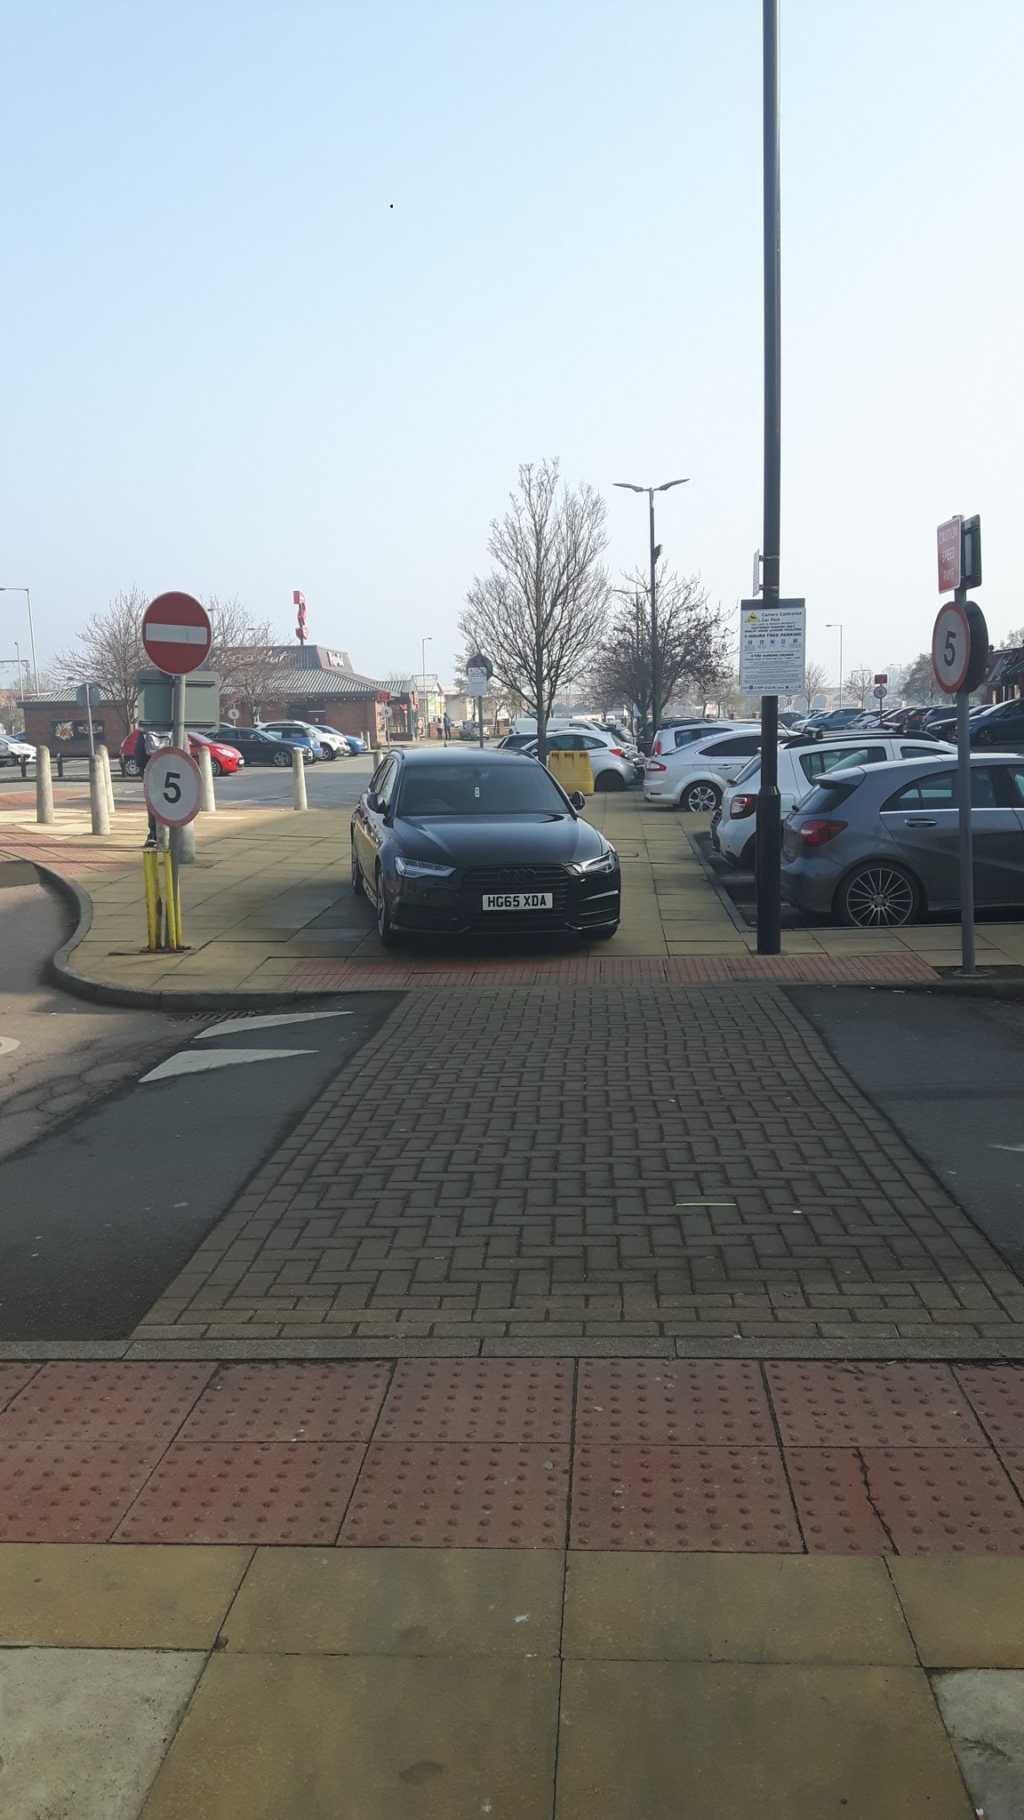 HG65 XDA displaying Inconsiderate Parking